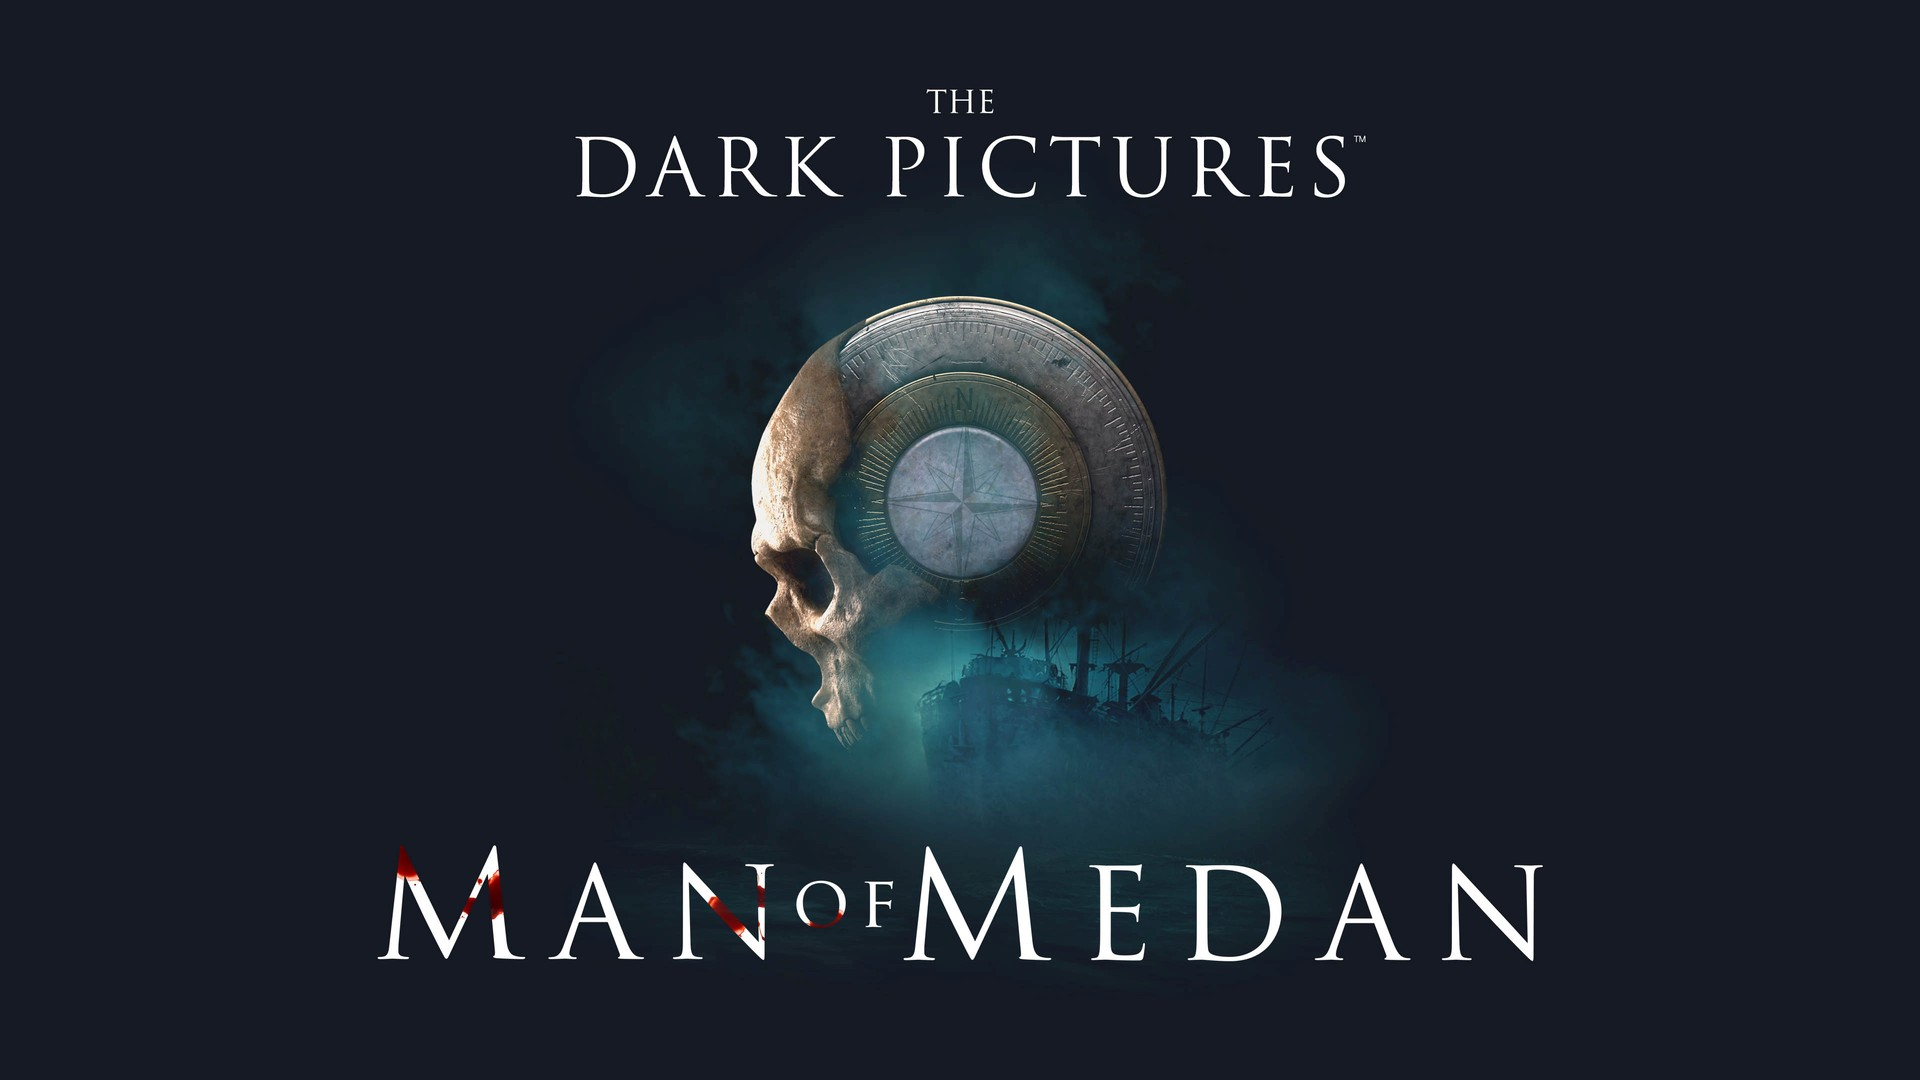 The Dark Pictures - Man of Medan key art